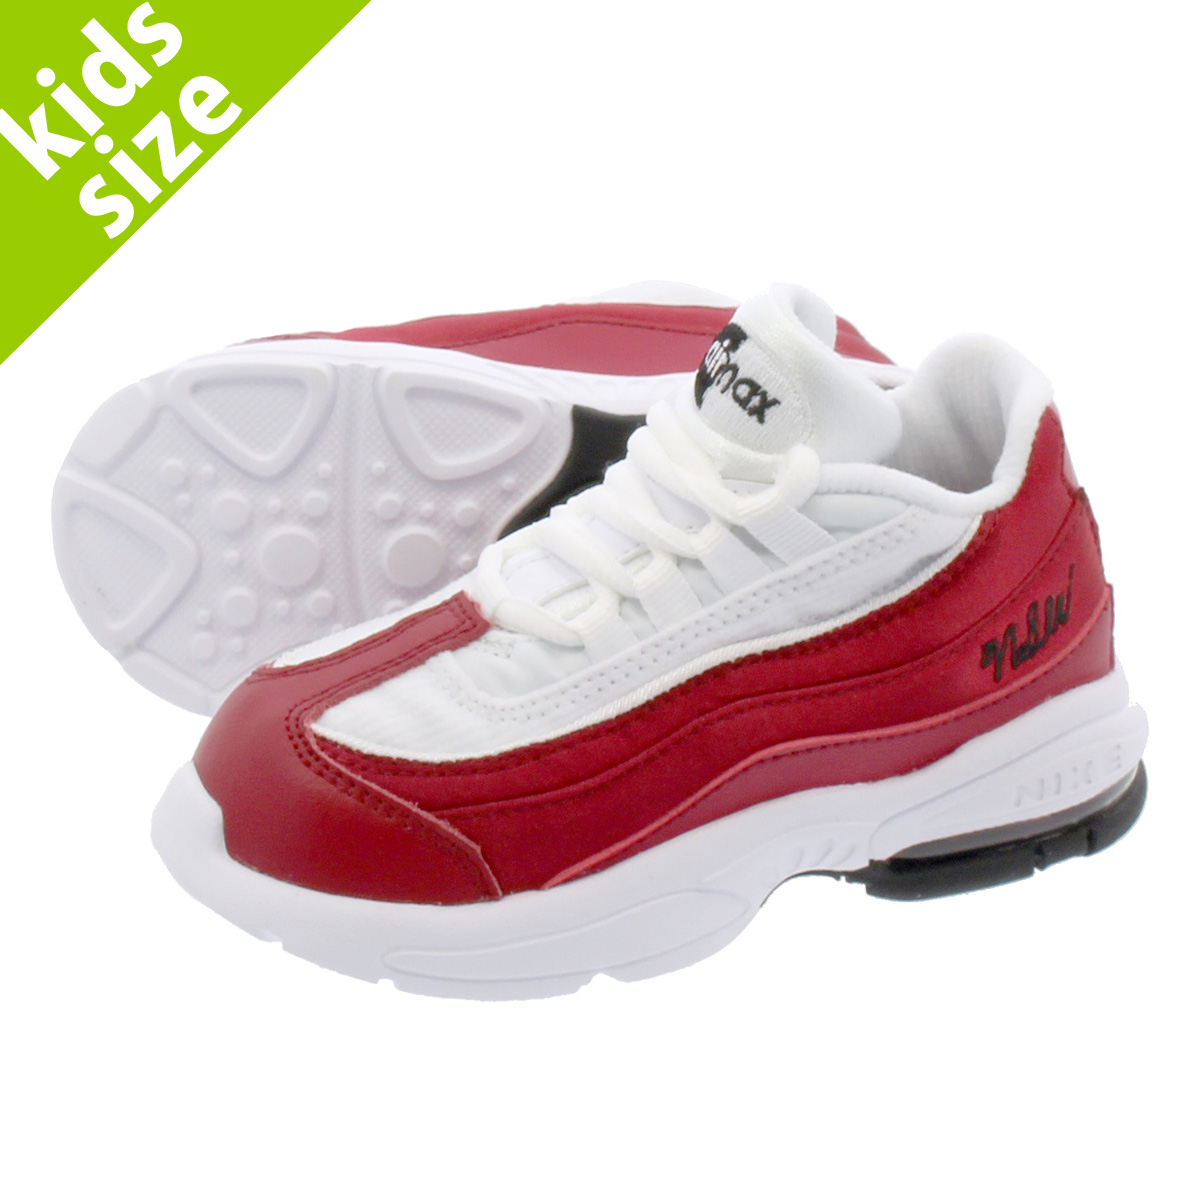 NIKE AIR MAX 95 TD SE Kie Ney AMAX 95 TD SE RED CRUSH WHITE BLACK ao9212-600 a16962793